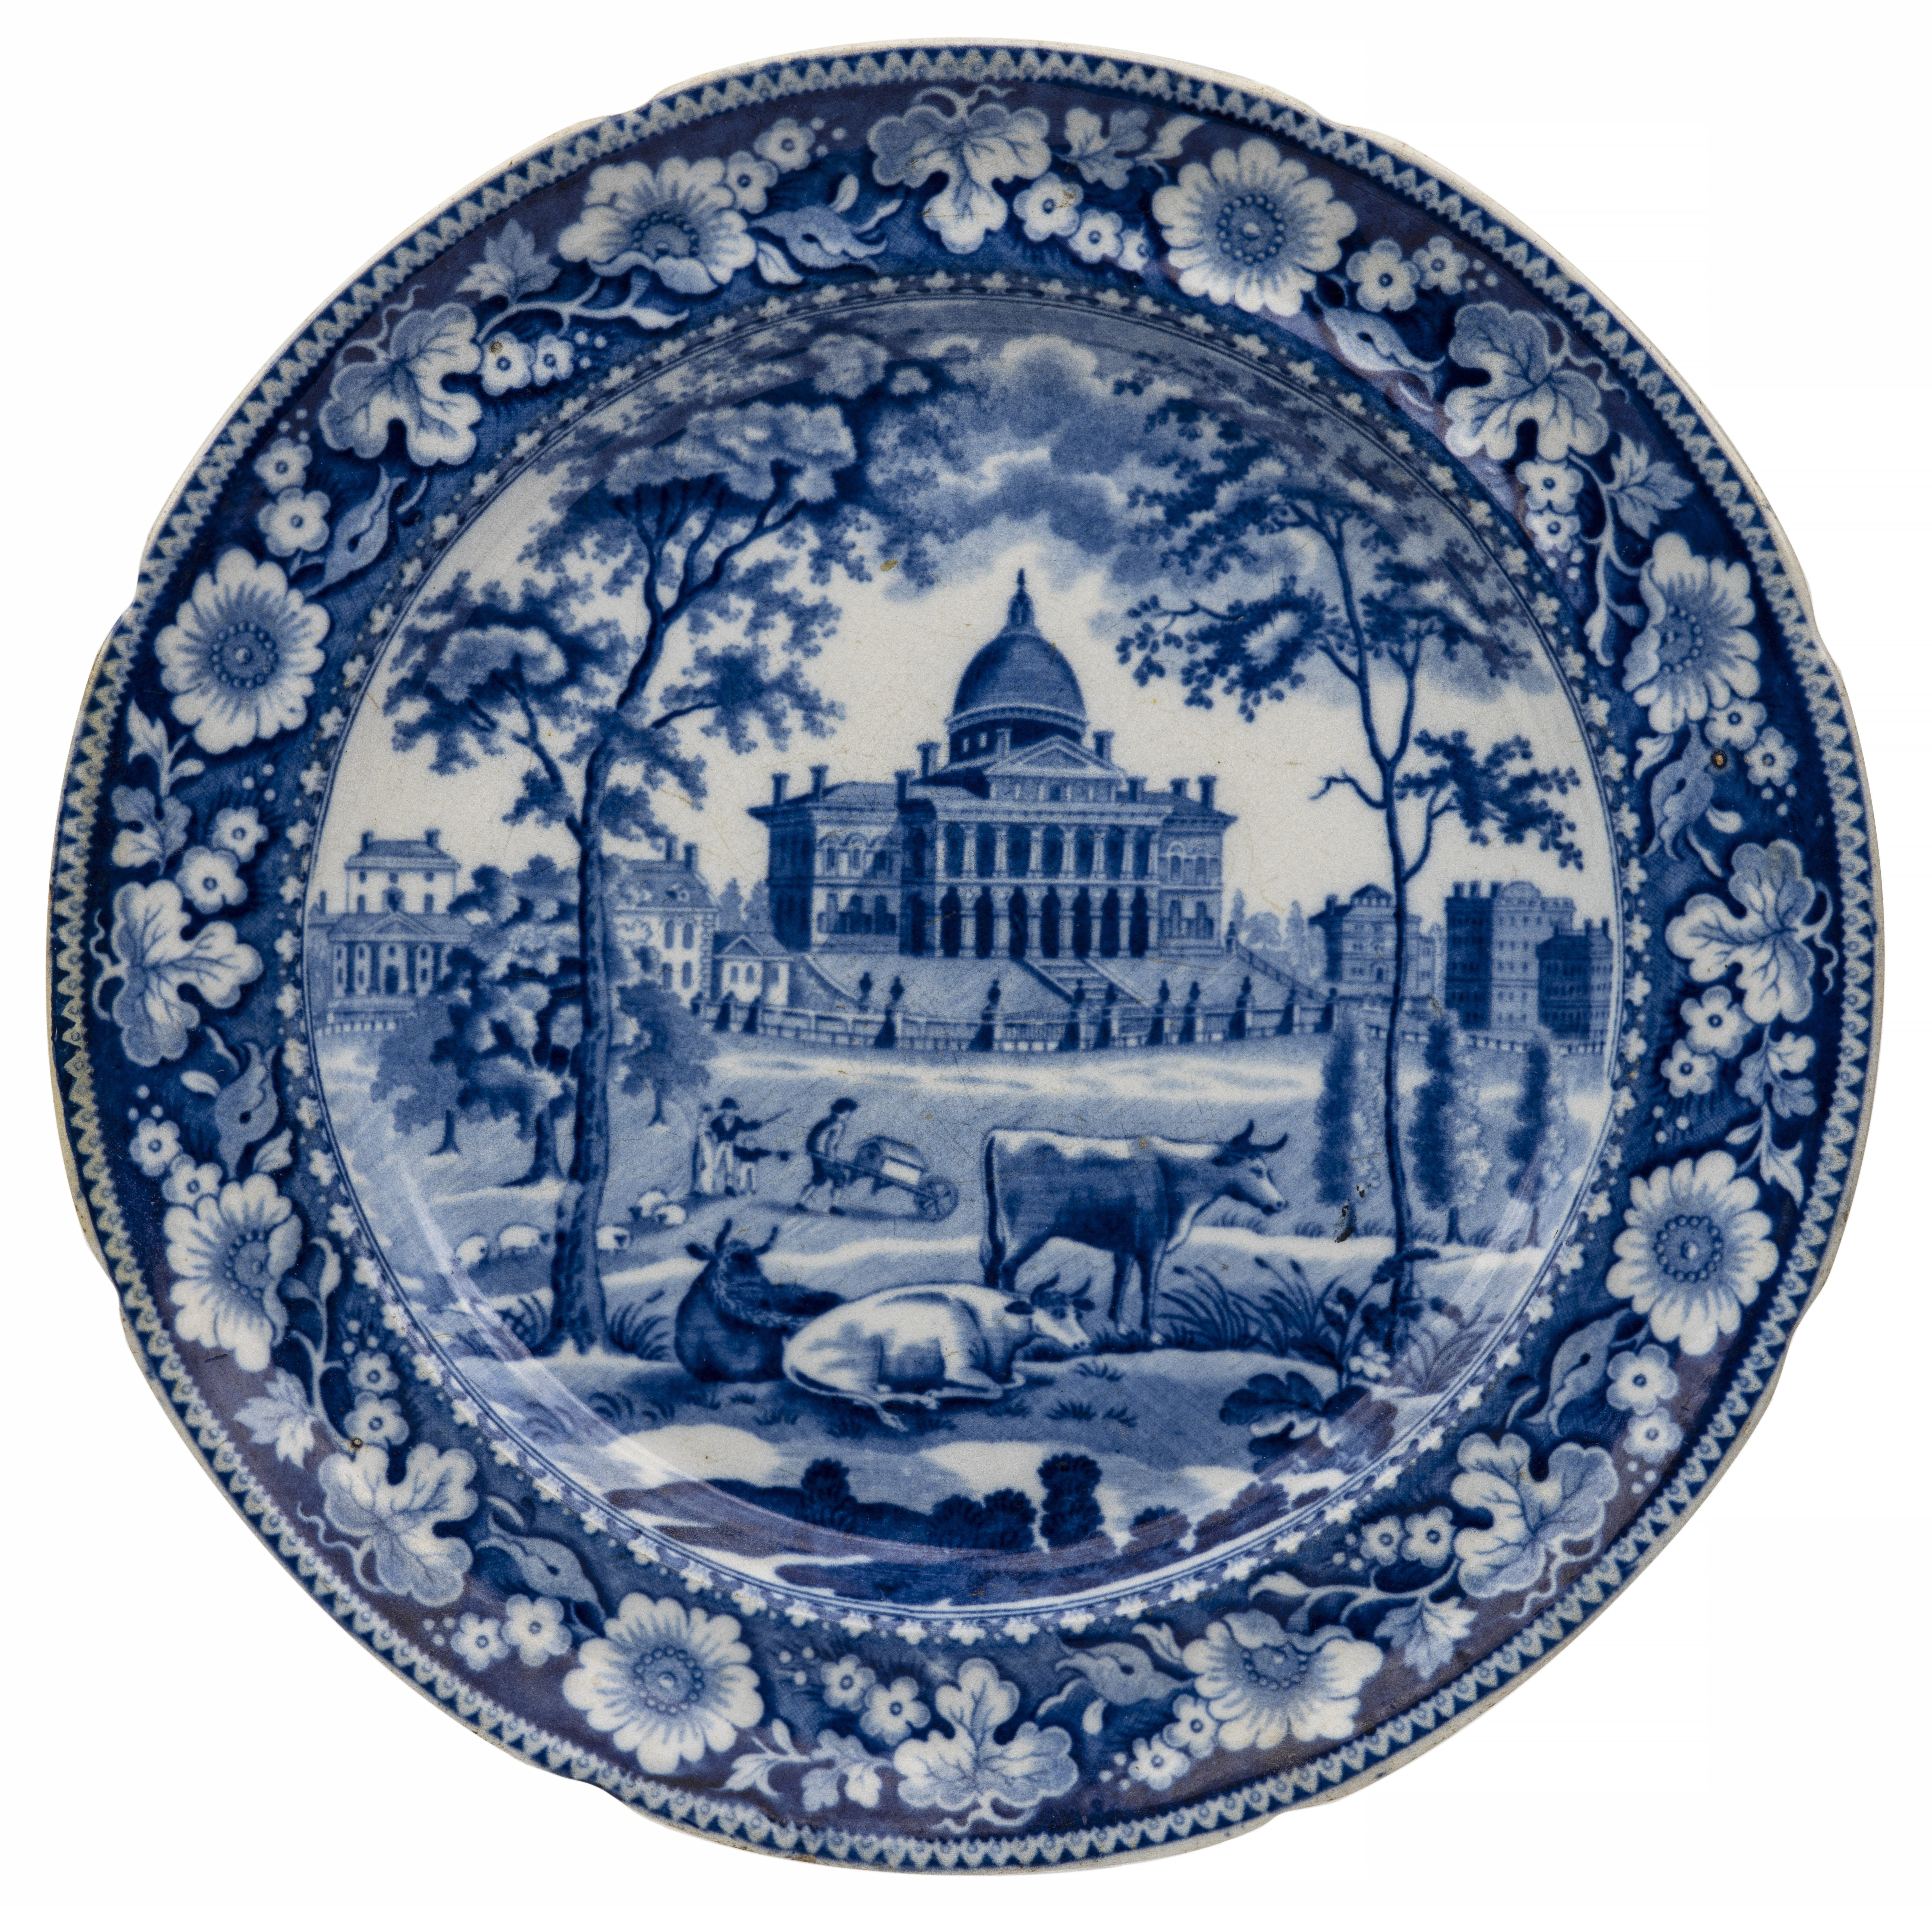 An Antique Lobbed Historical Staffordshire Plate